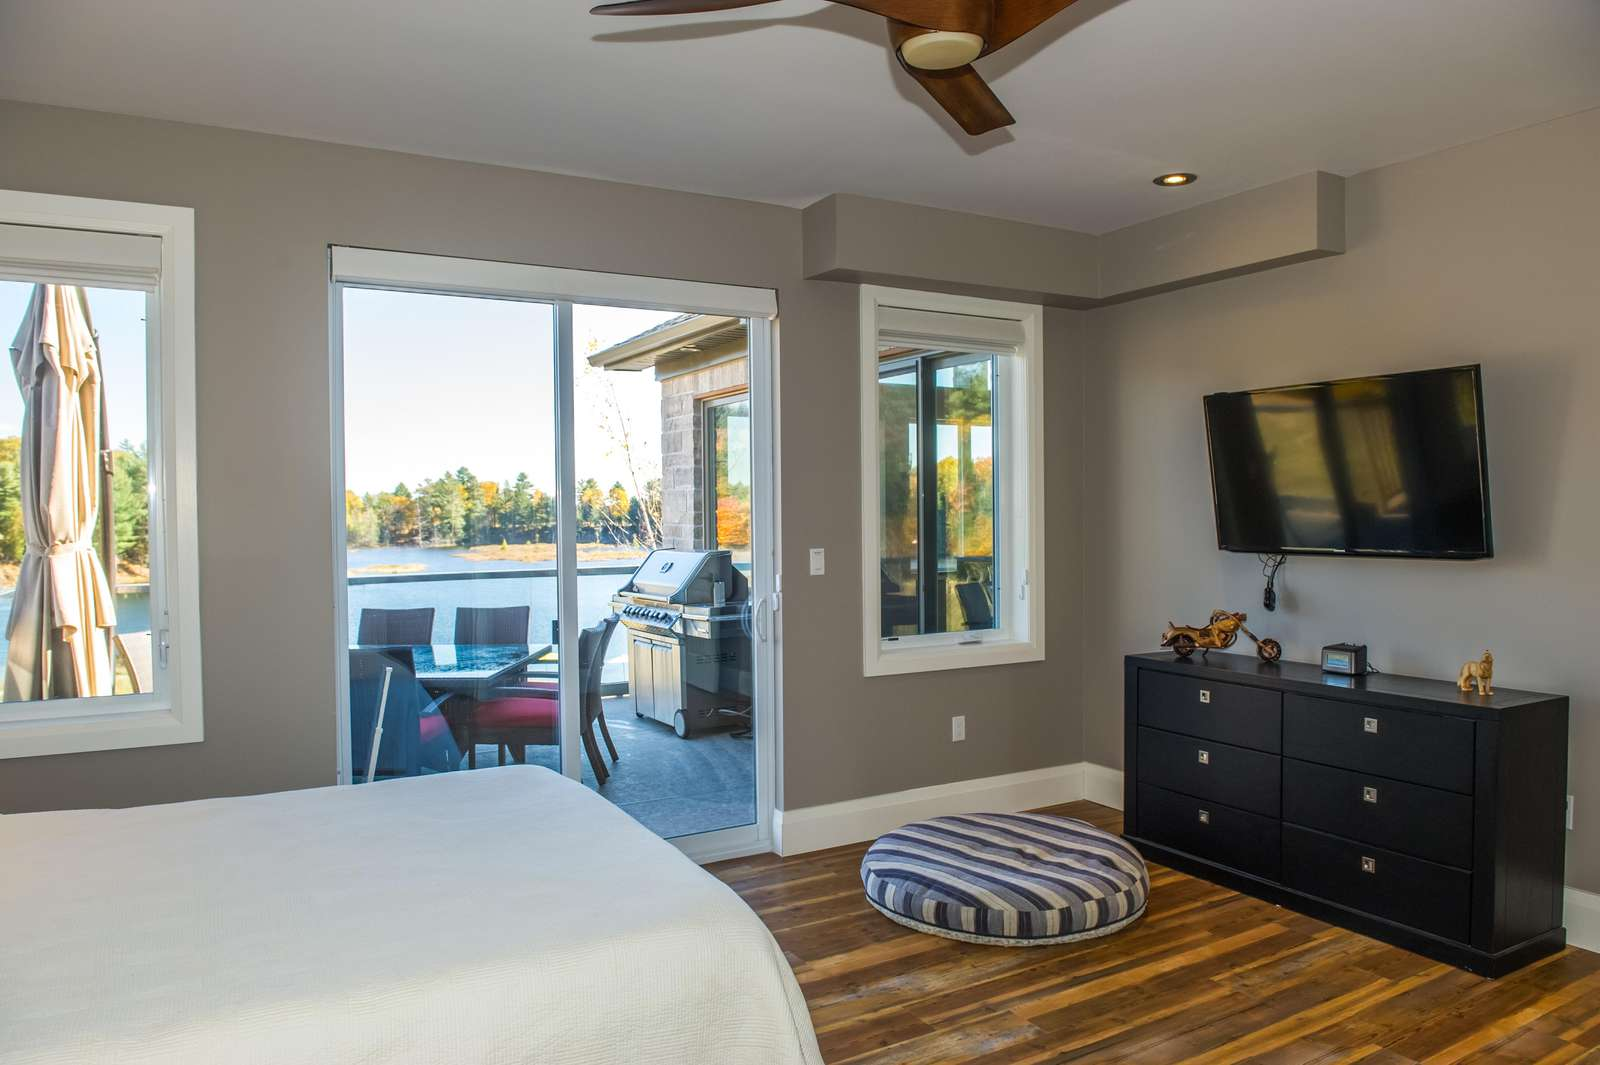 Bedroom with walkout to deck